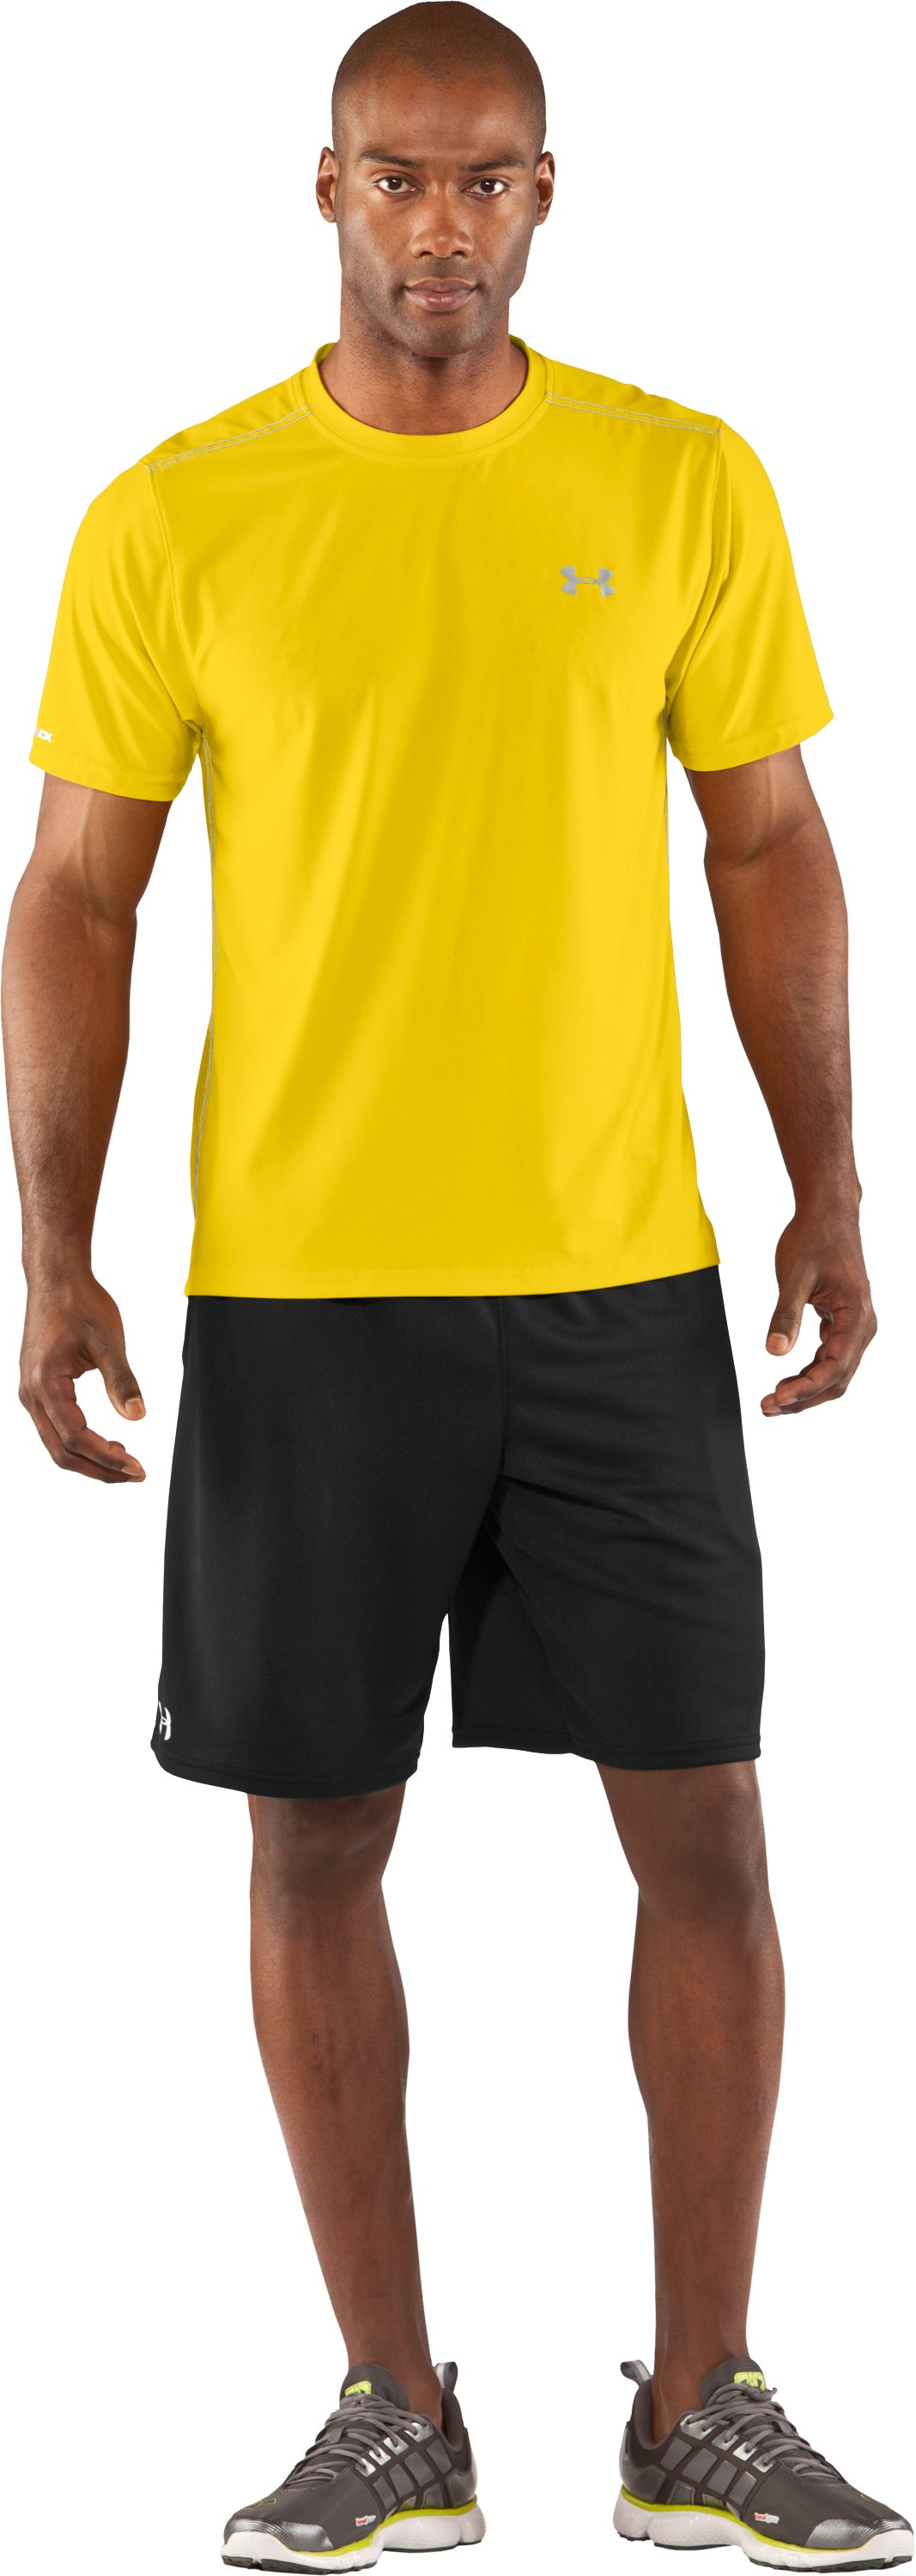 Men's coldblack® Short Sleeve T-Shirt, Taxi